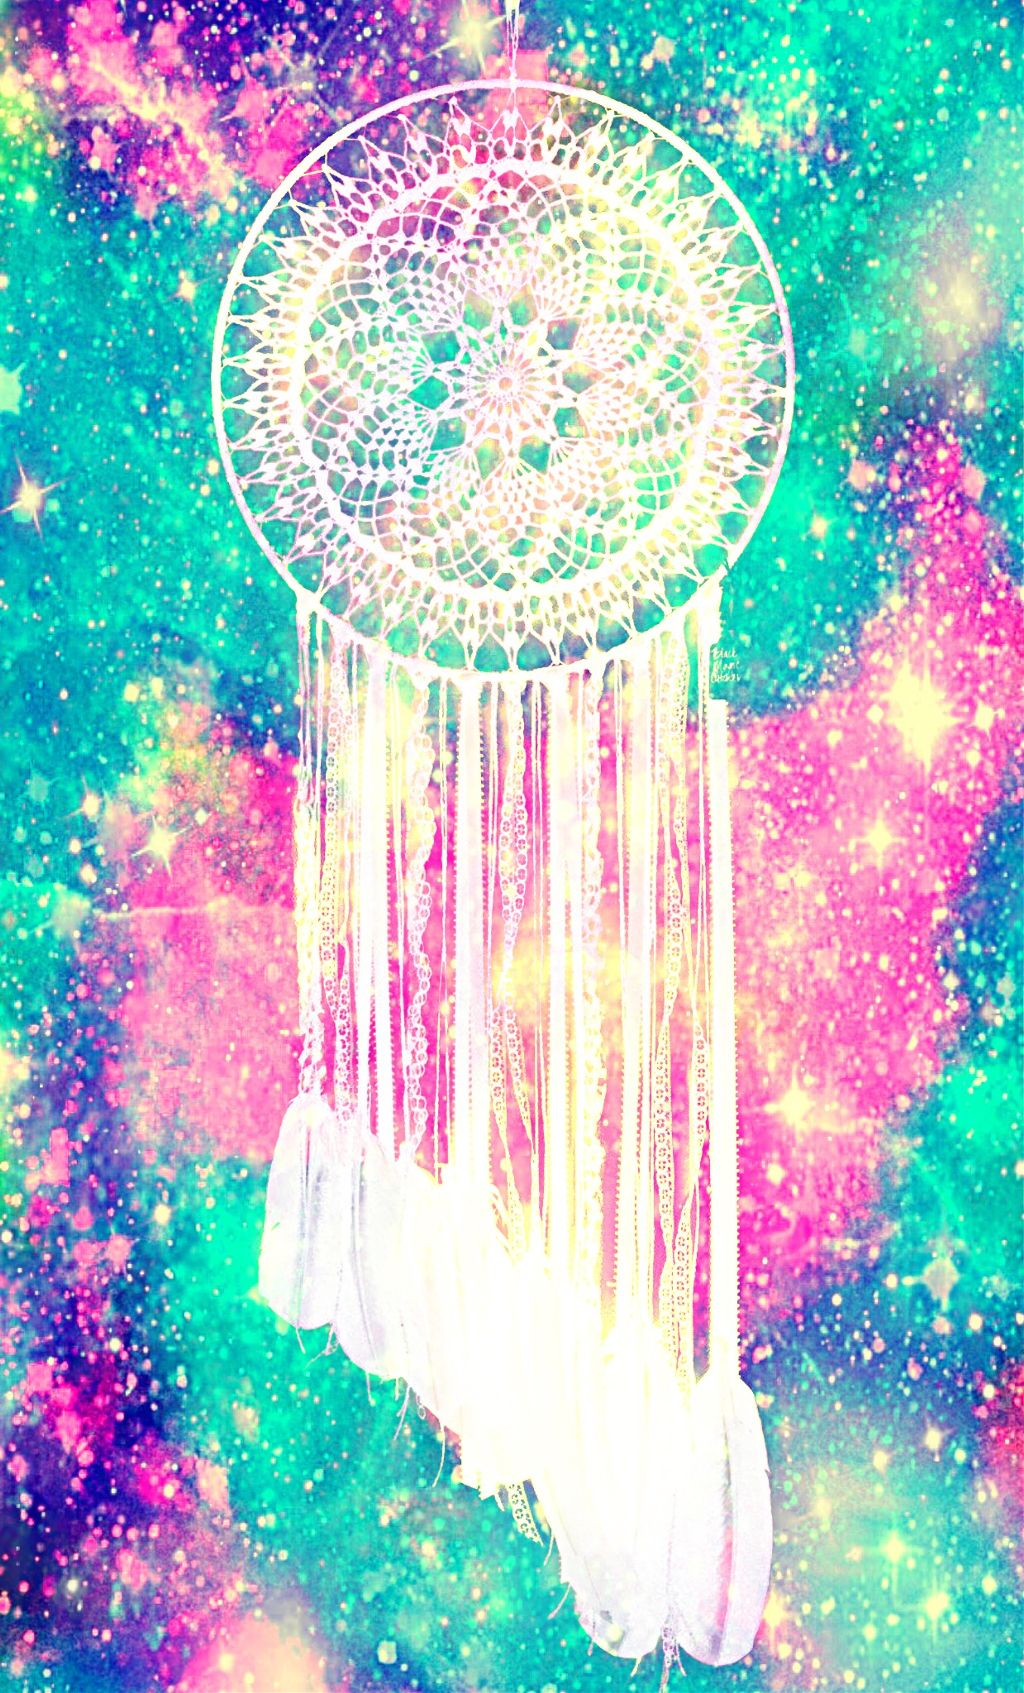 #freetoedit @mpink88 #glitter #sparkle #galaxy #dreamcatcher #boho #shimmer #colorful #bling #hipster #glow #remixit #background